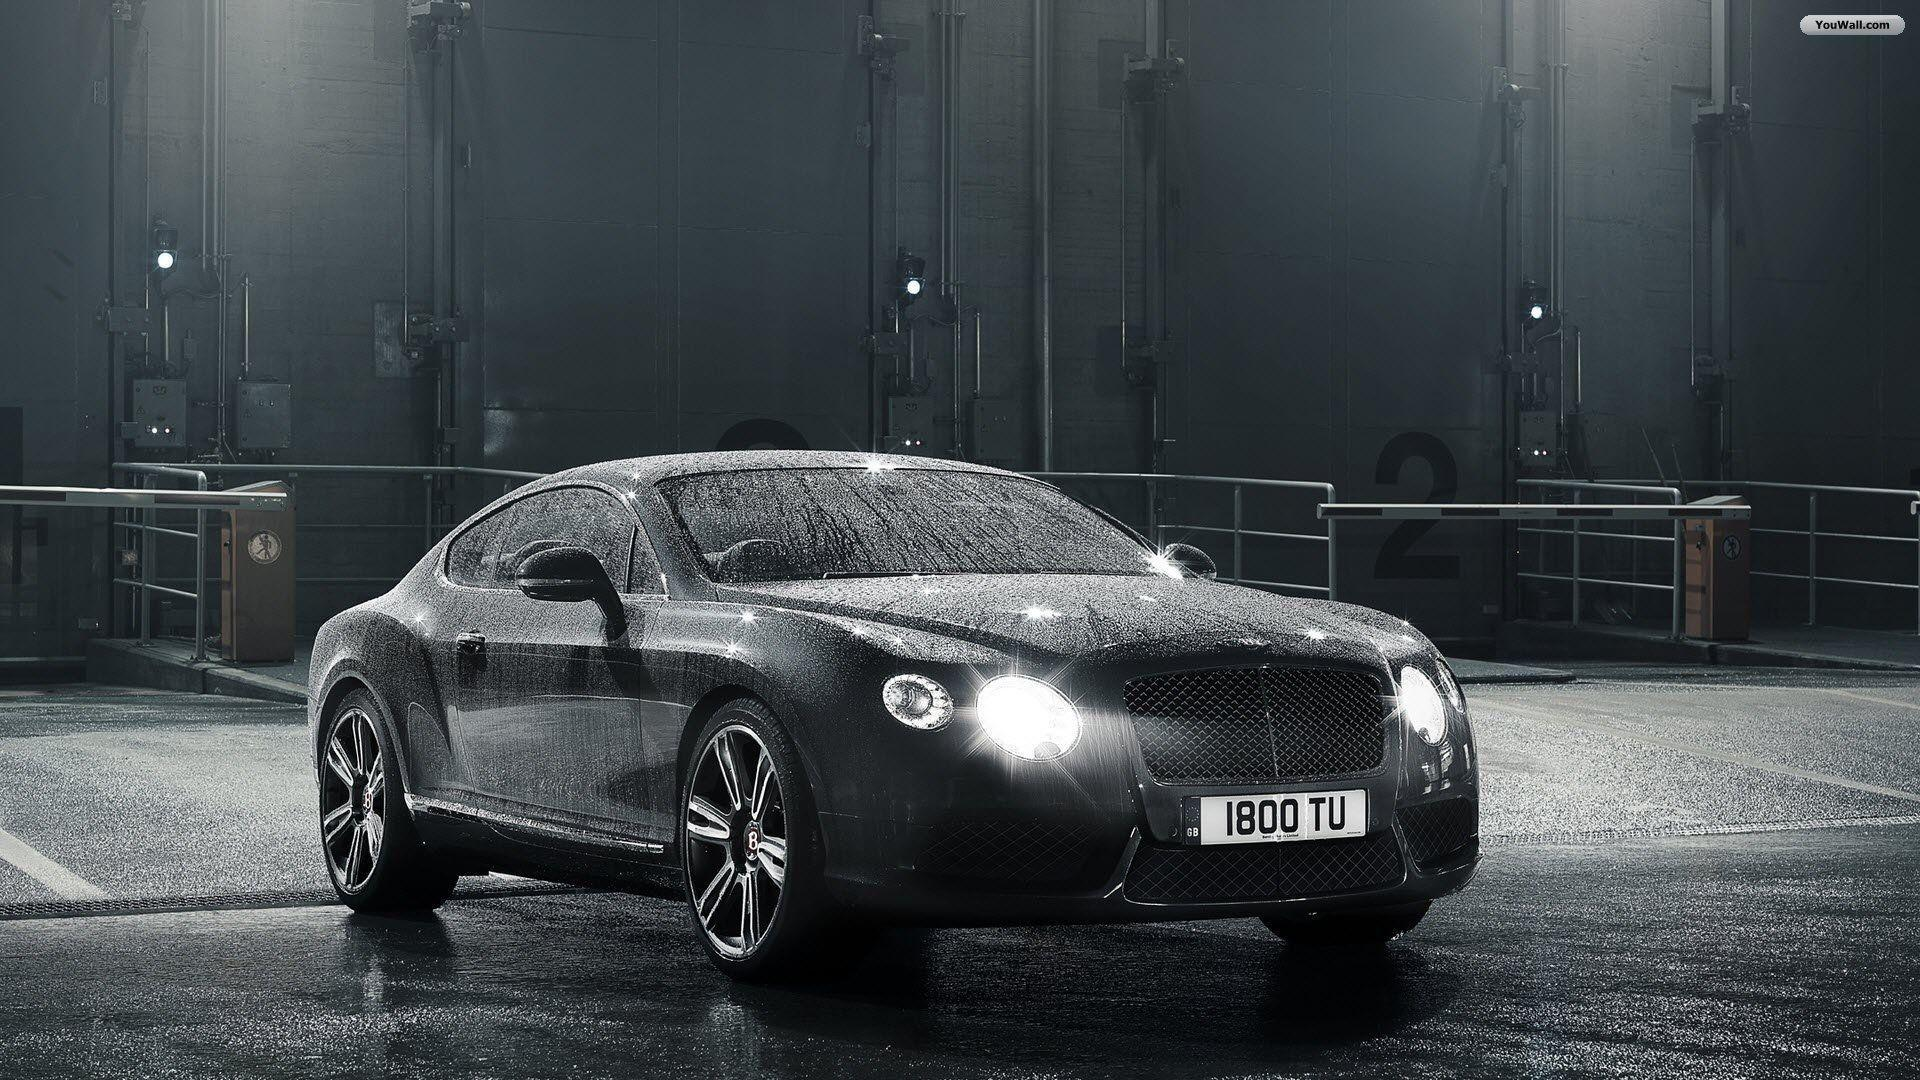 Wallpapers For > Bentley Continental Wallpapers Hd